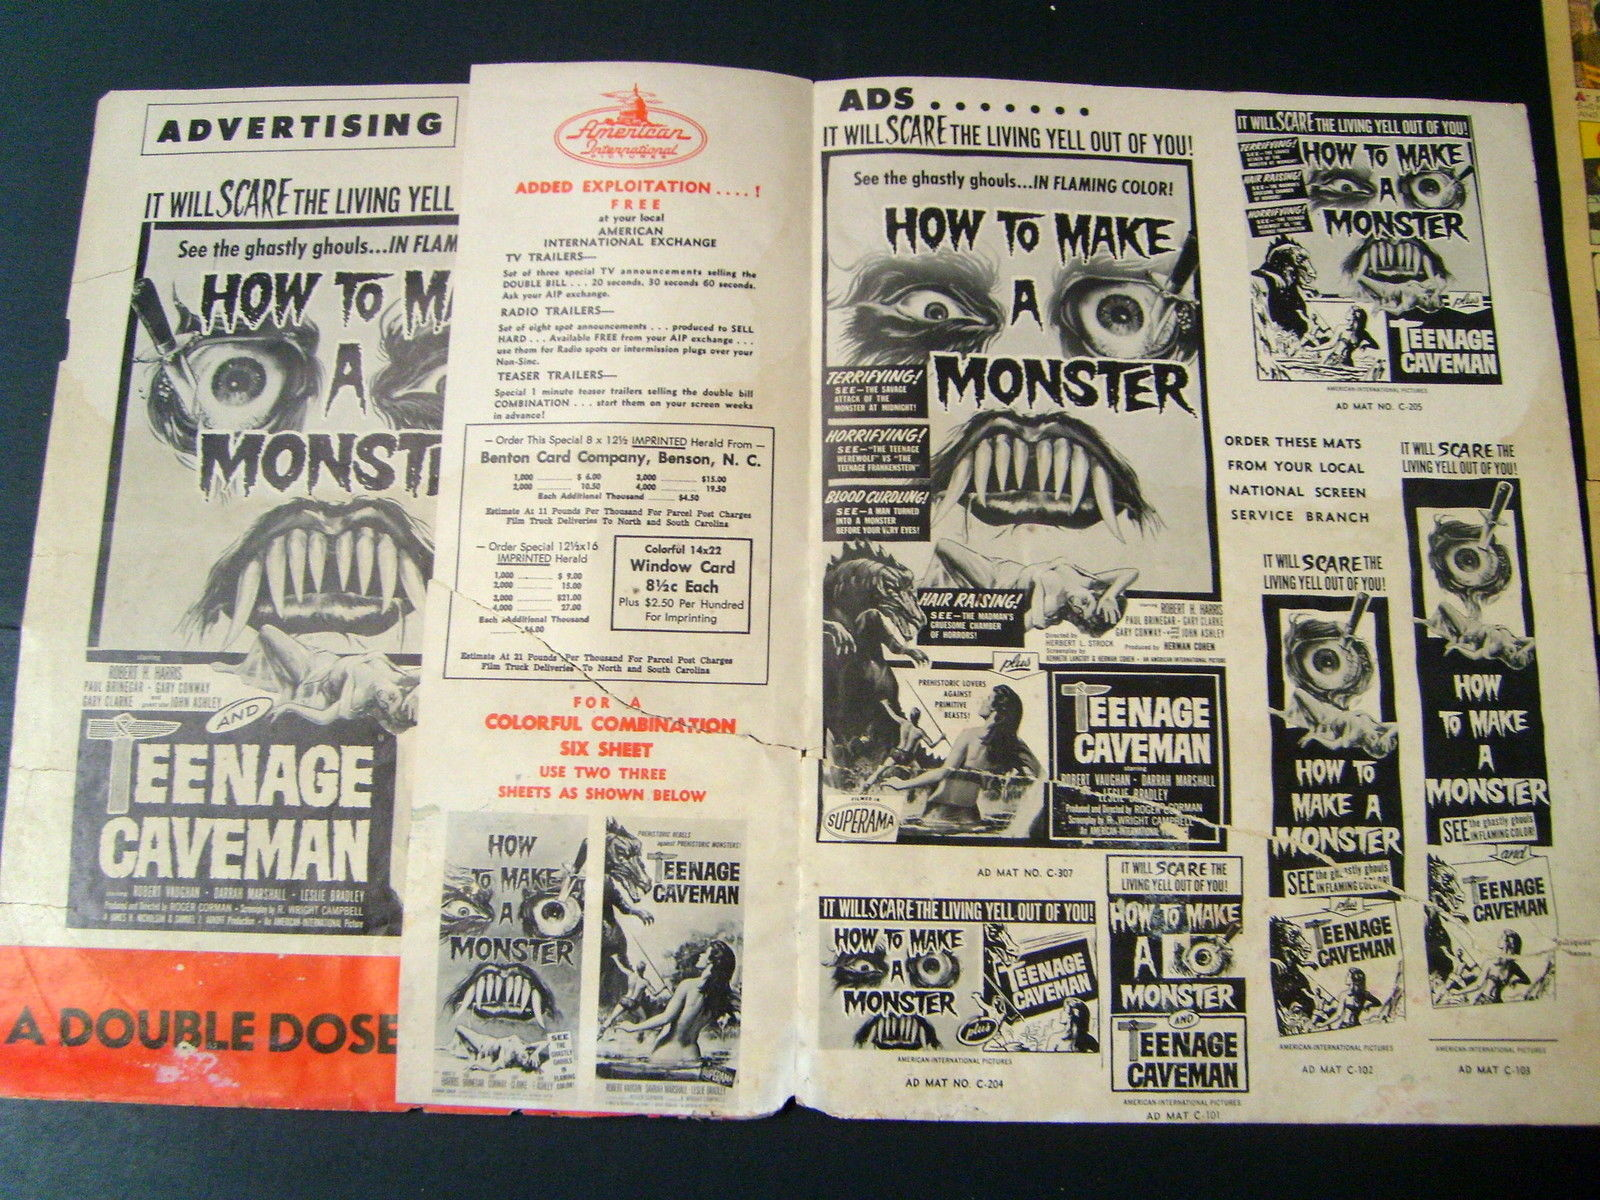 GARY CONWAY (HOW TO MAKE A MONSTER & TEENAGE CAVEMAN) MOVIE PRESSBOOK (WOW)